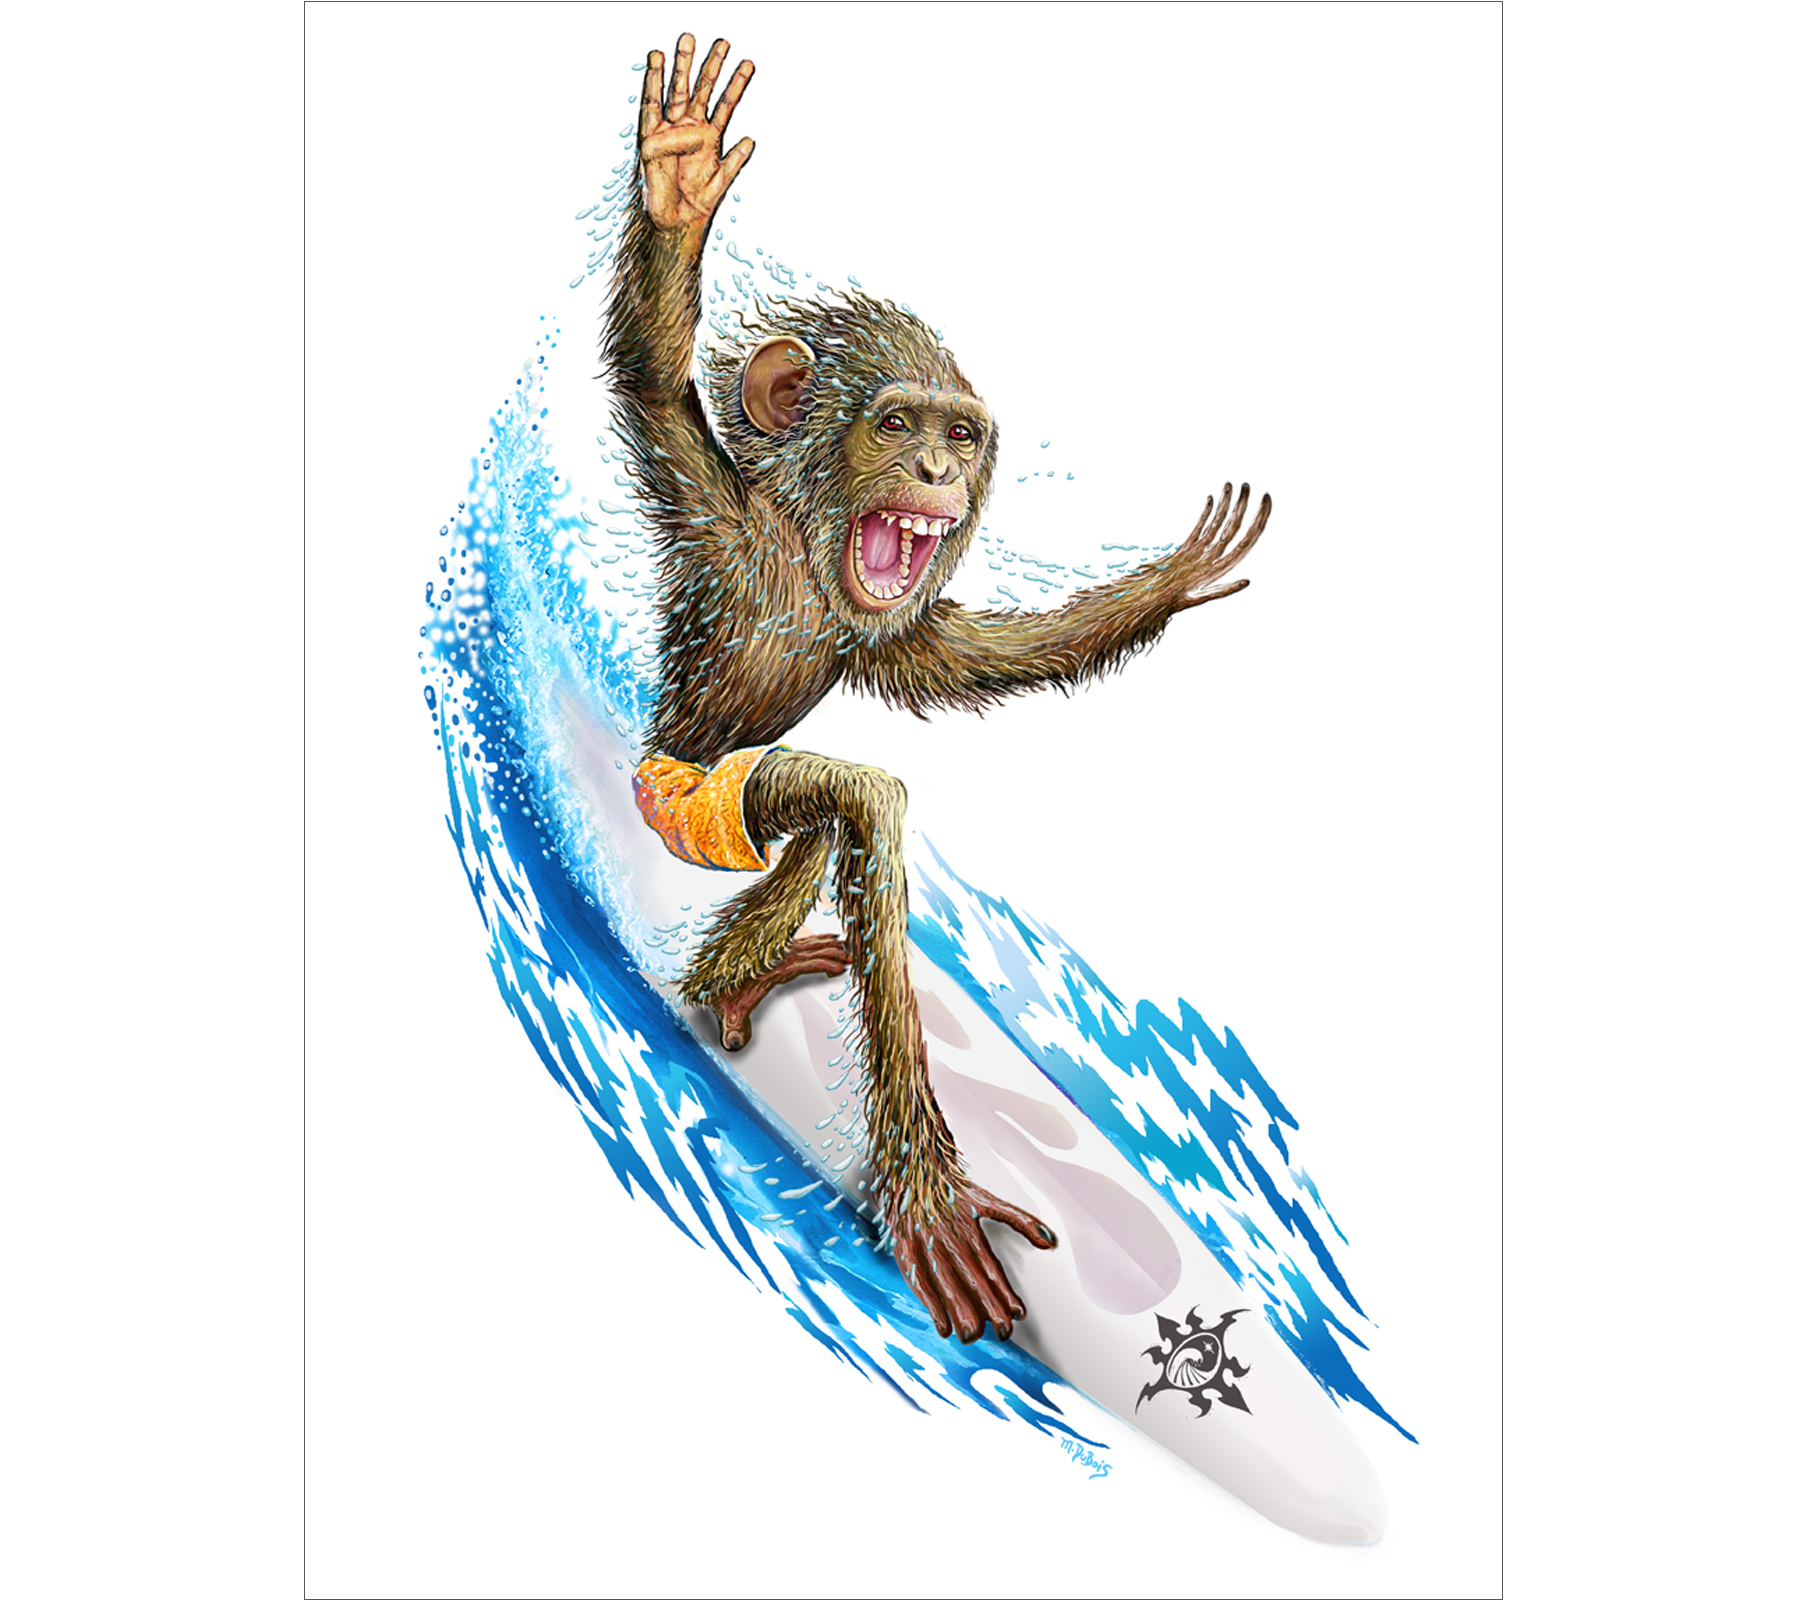 L-573 // Surfing Monkey